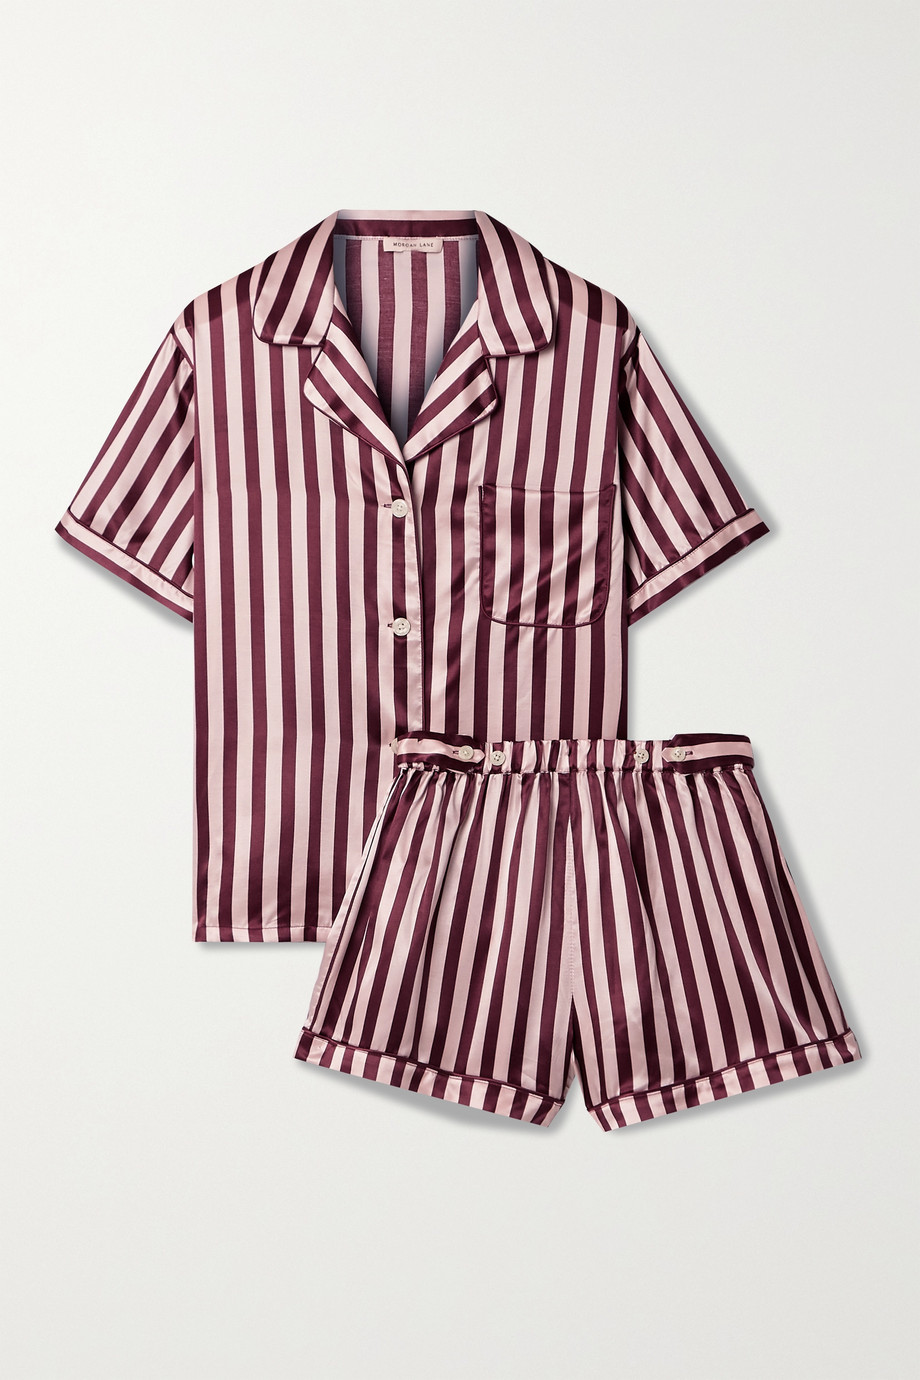 MORGAN LANE Katelyn Corey striped satin pajama set